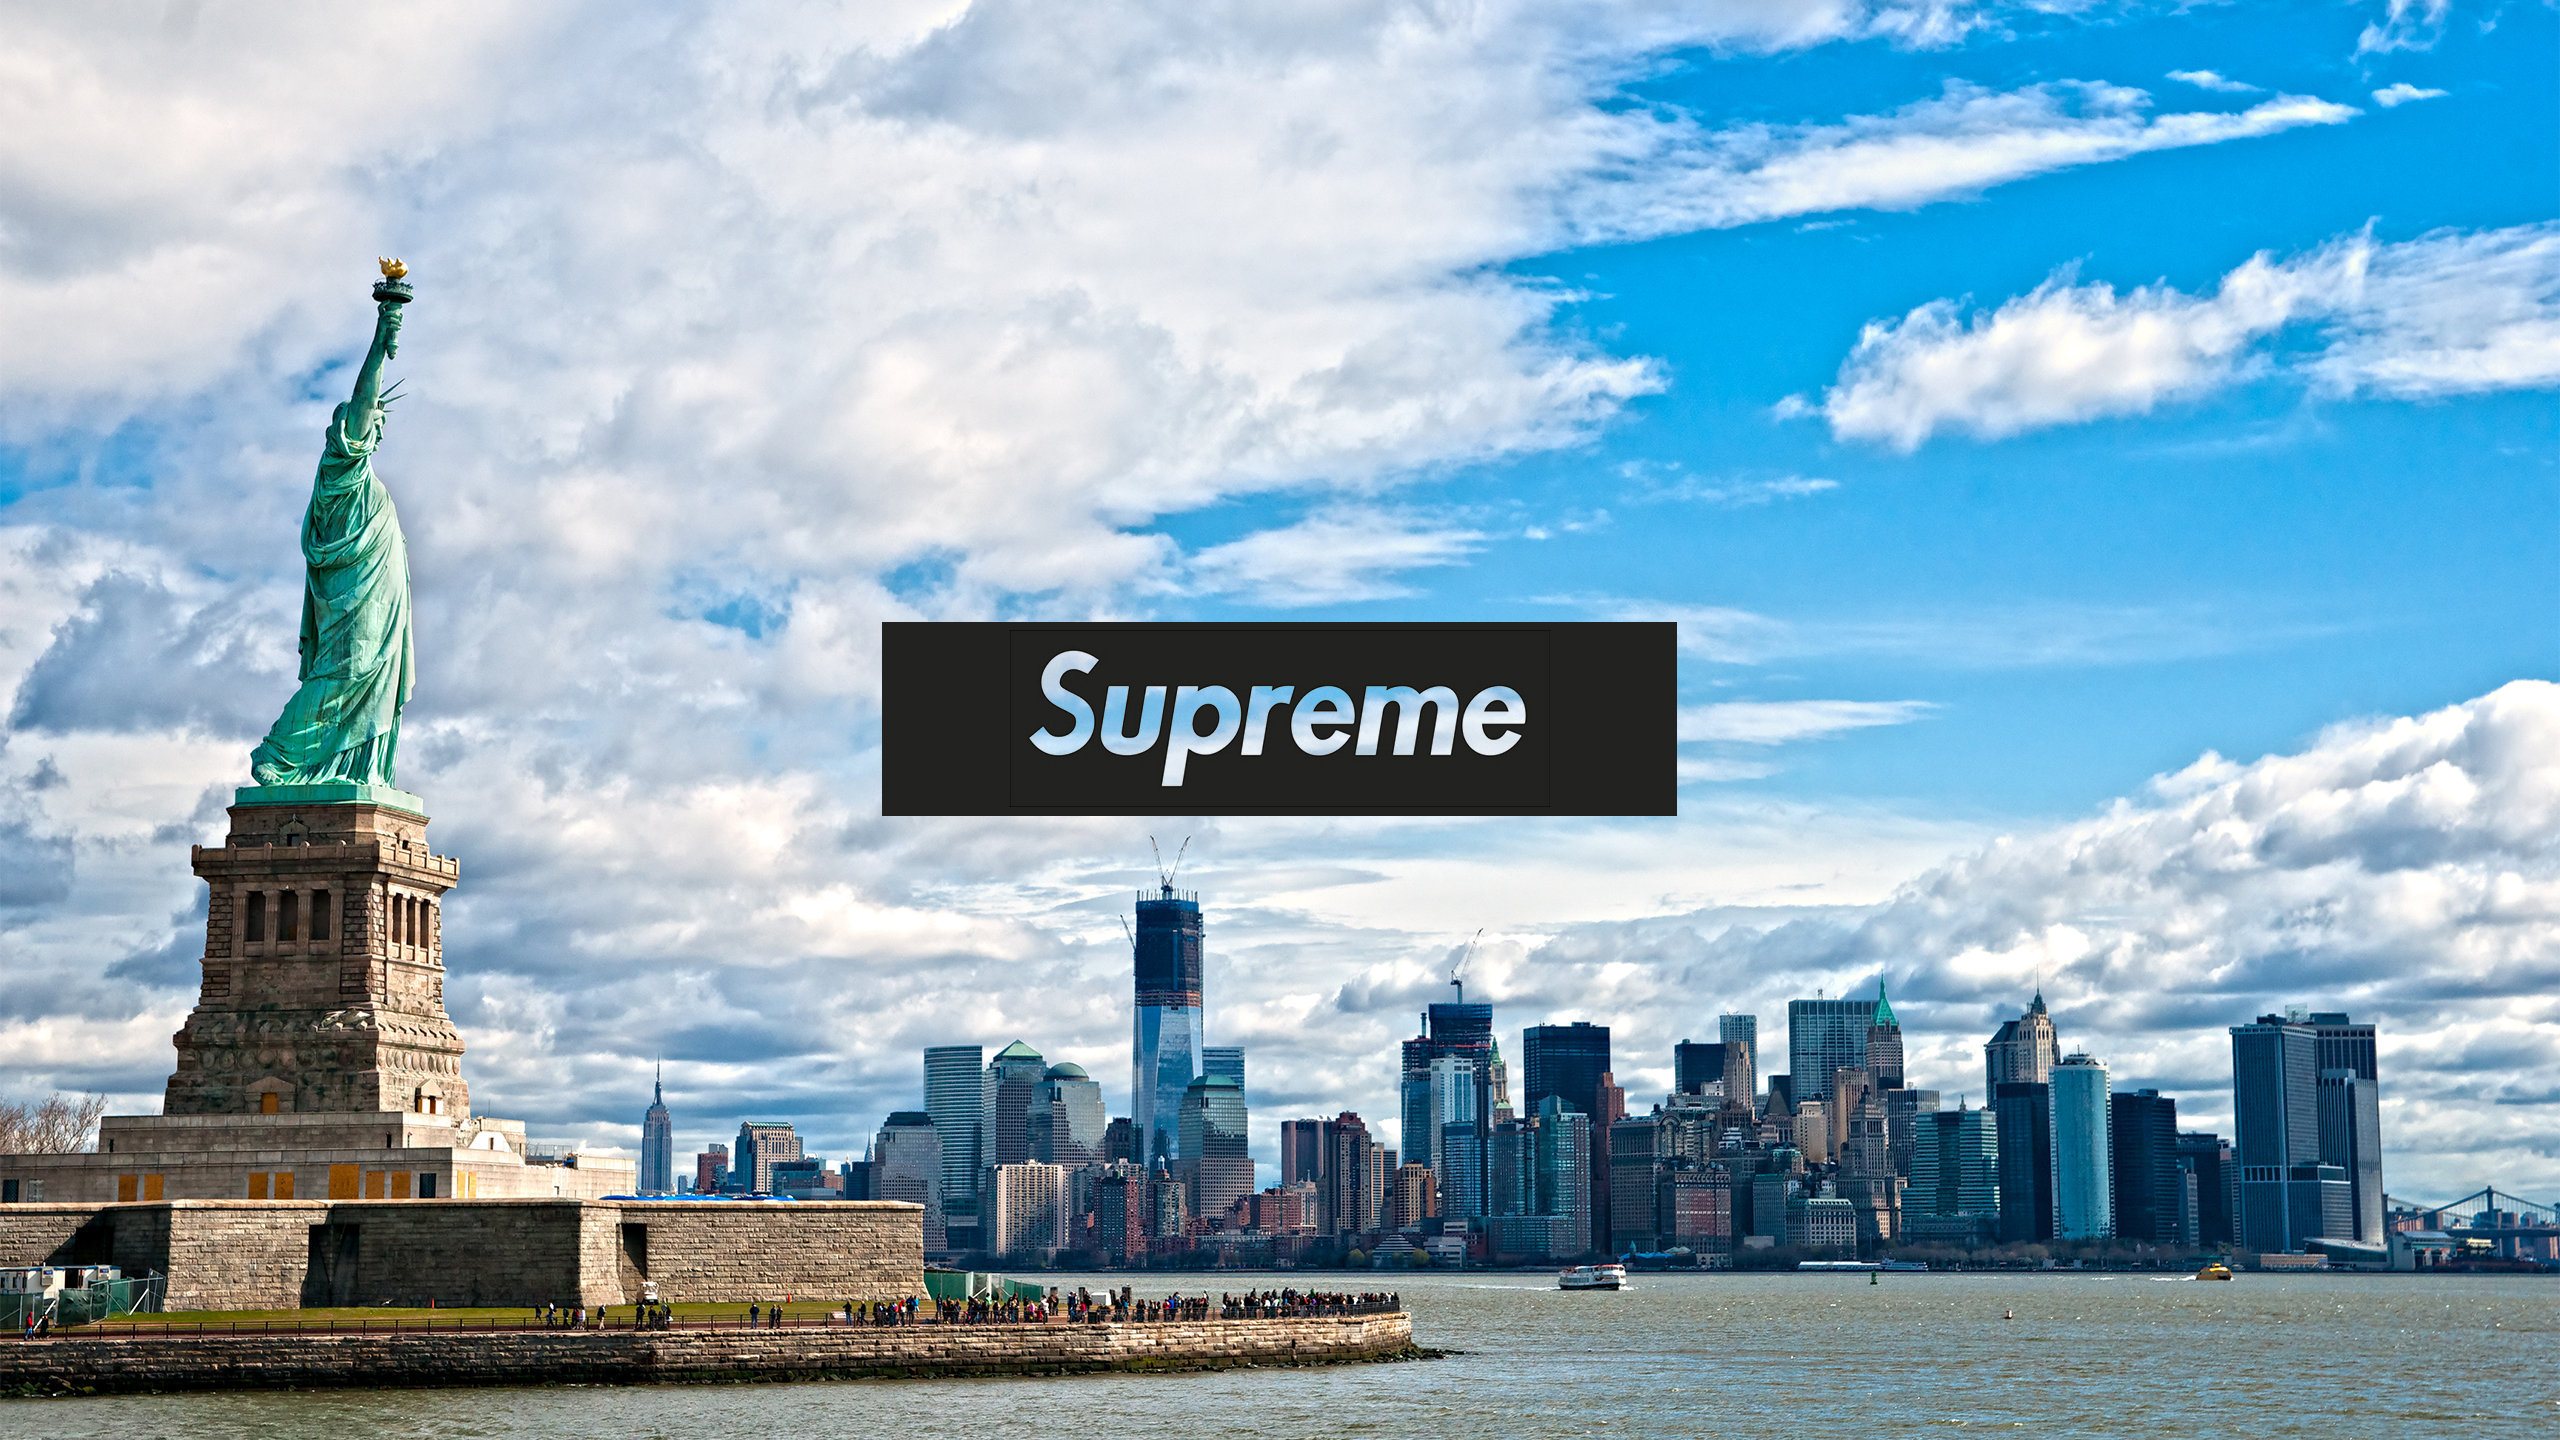 New York Supreme Wallpaper   AuthenticSupremecom 2560x1440